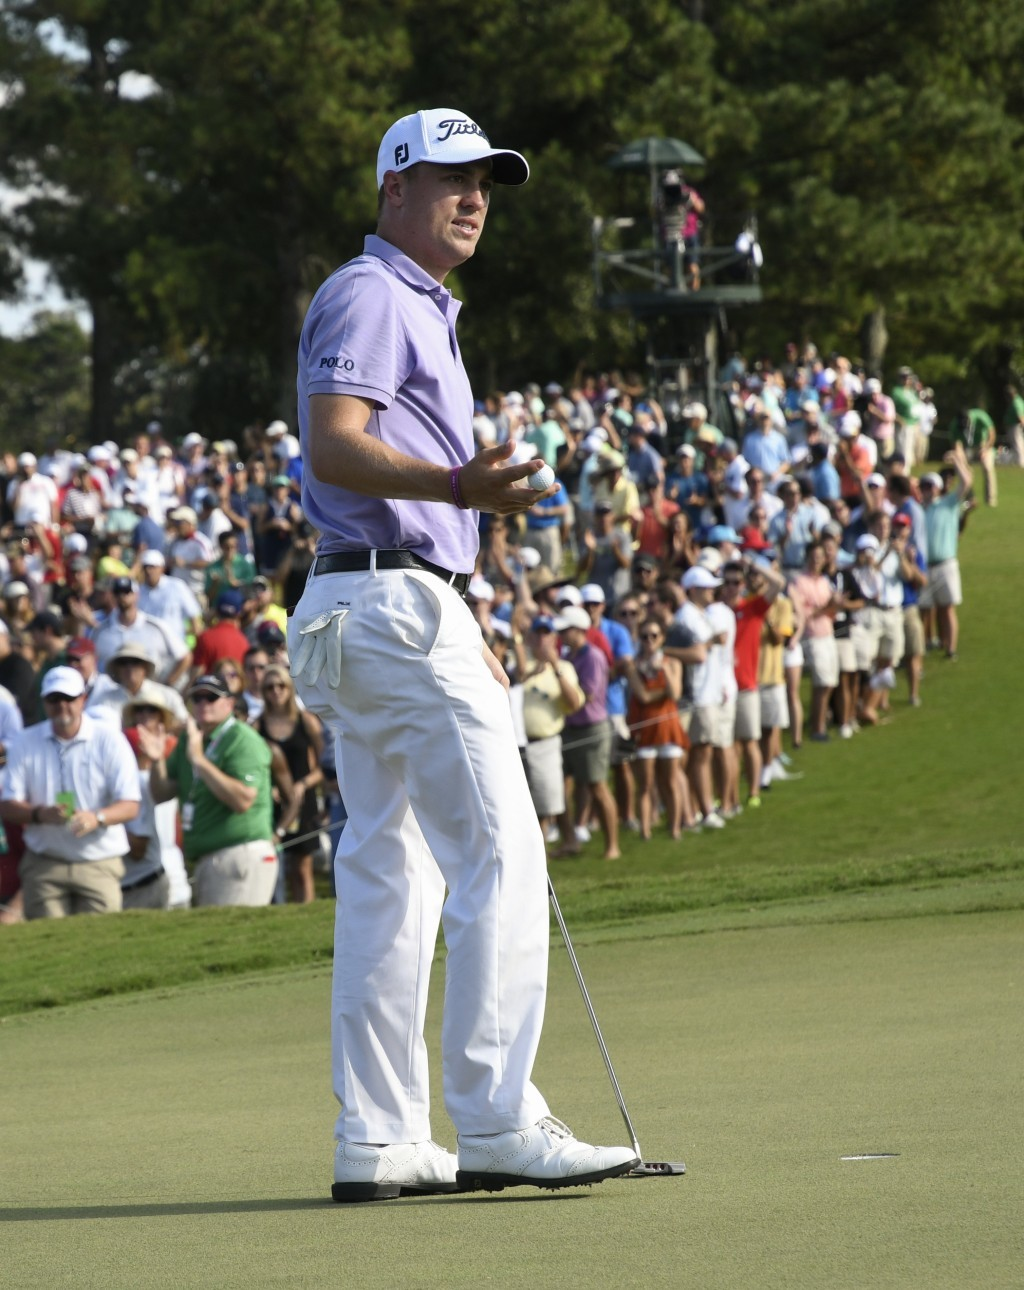 Justin Thomas picks up his ball after scoring a birdie on hole seventeen during the final round of the Tour Championship golf tournament at East Lake ...